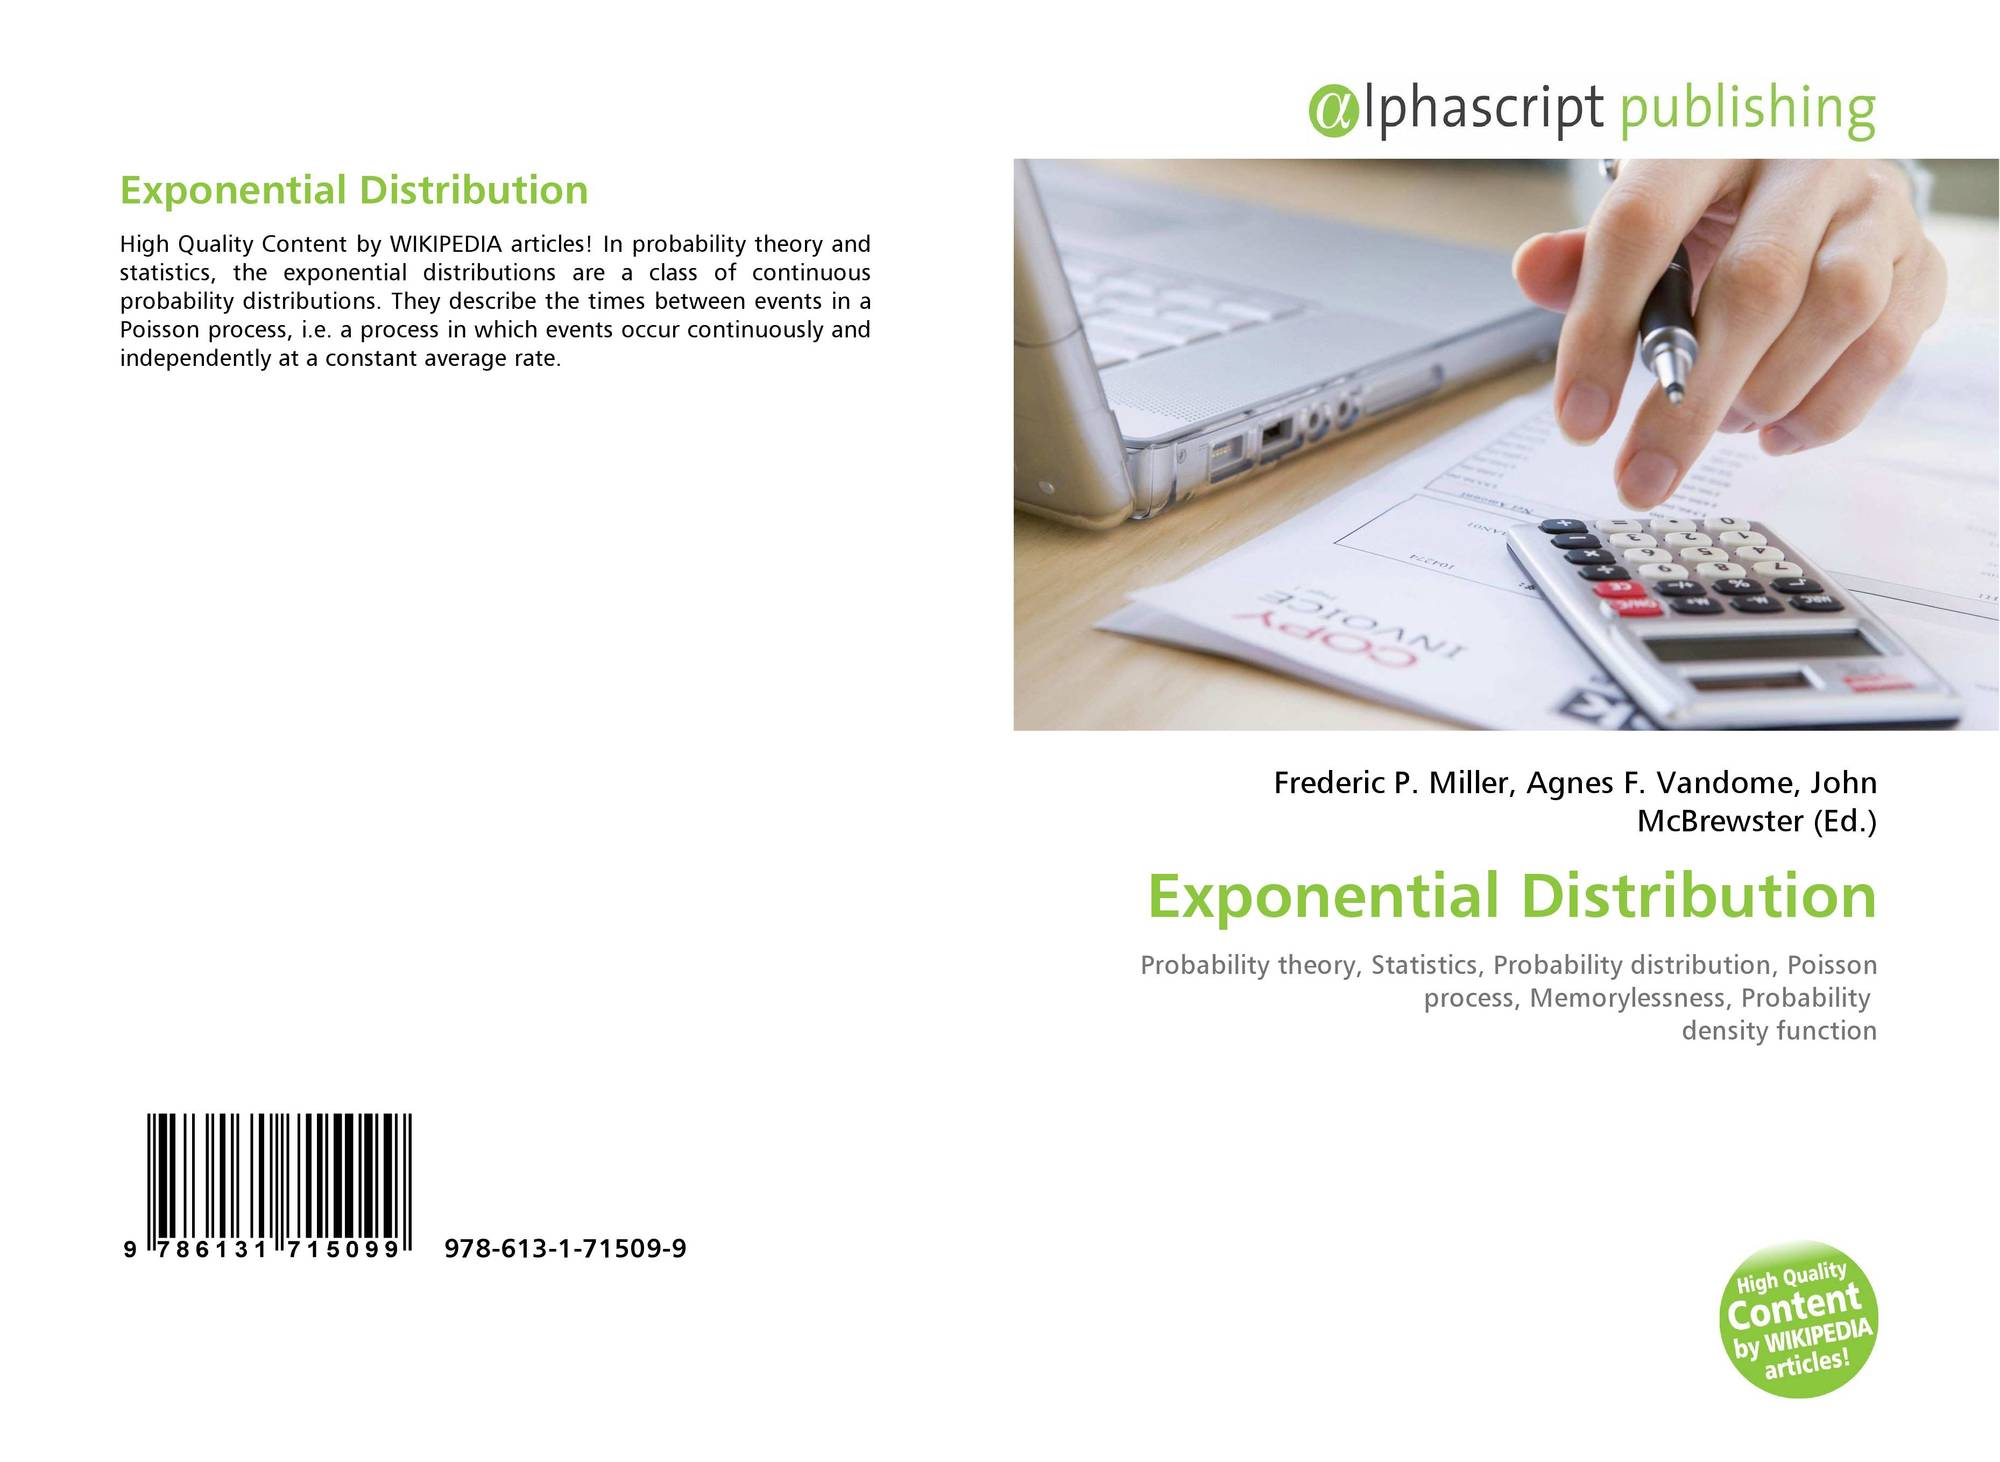 Exponential Distribution, 978-613-1-71509-9, 6131715092